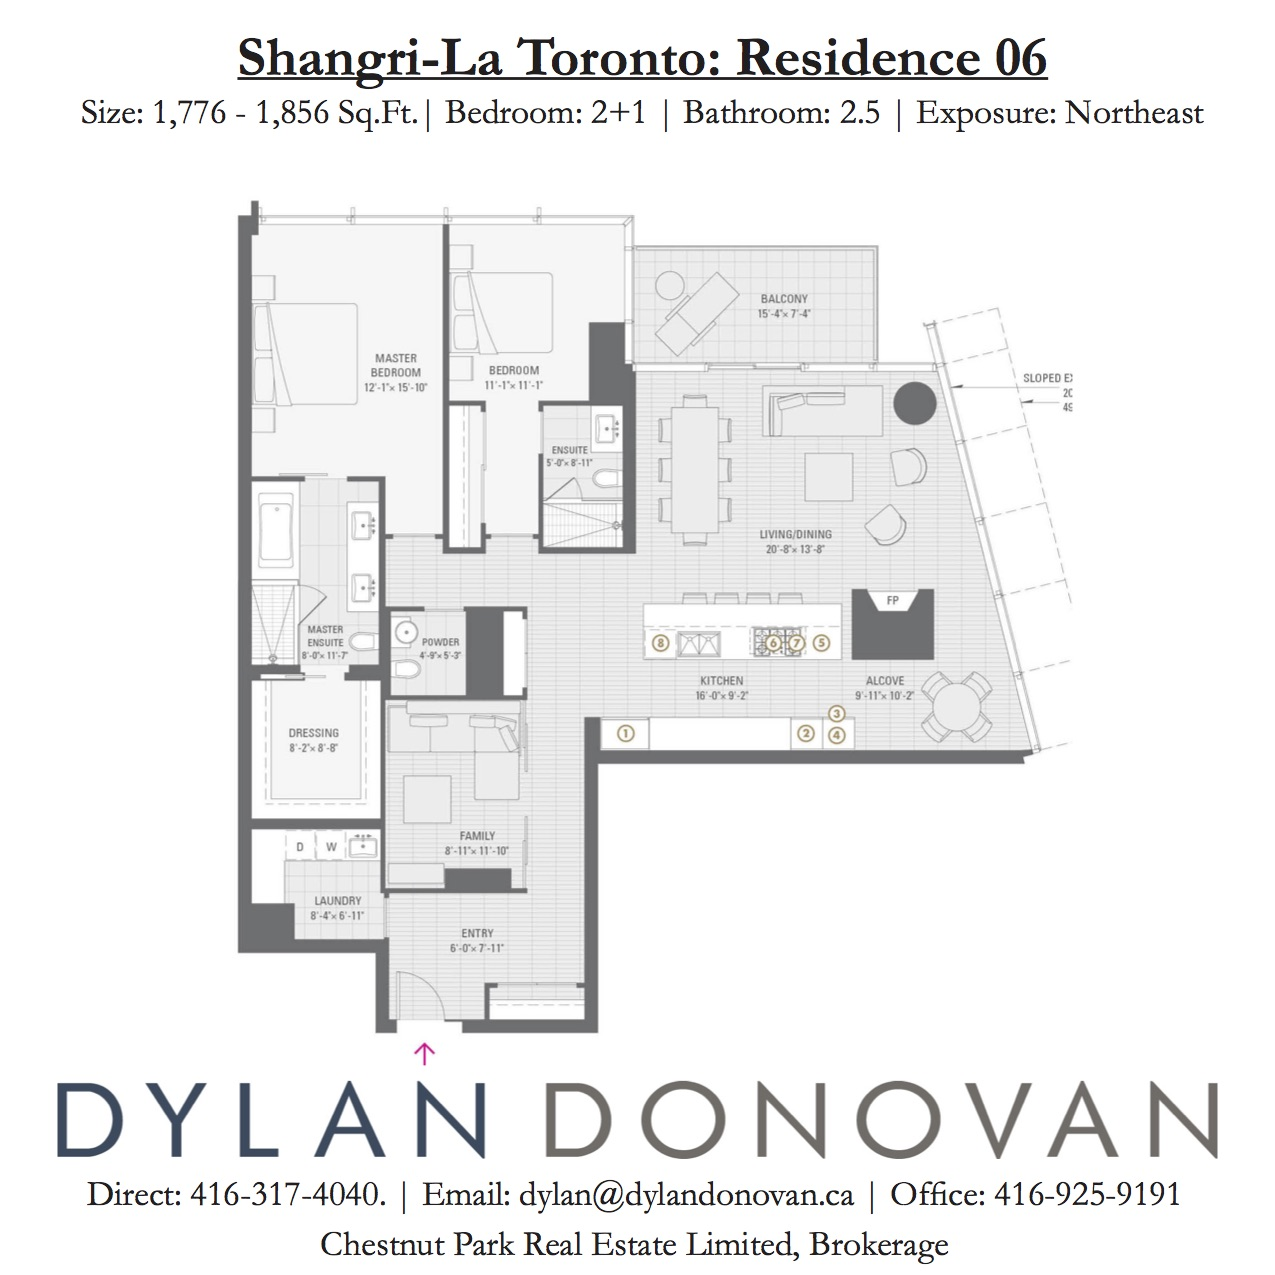 180 University Avenue Suite 4806 Lease Shangri La